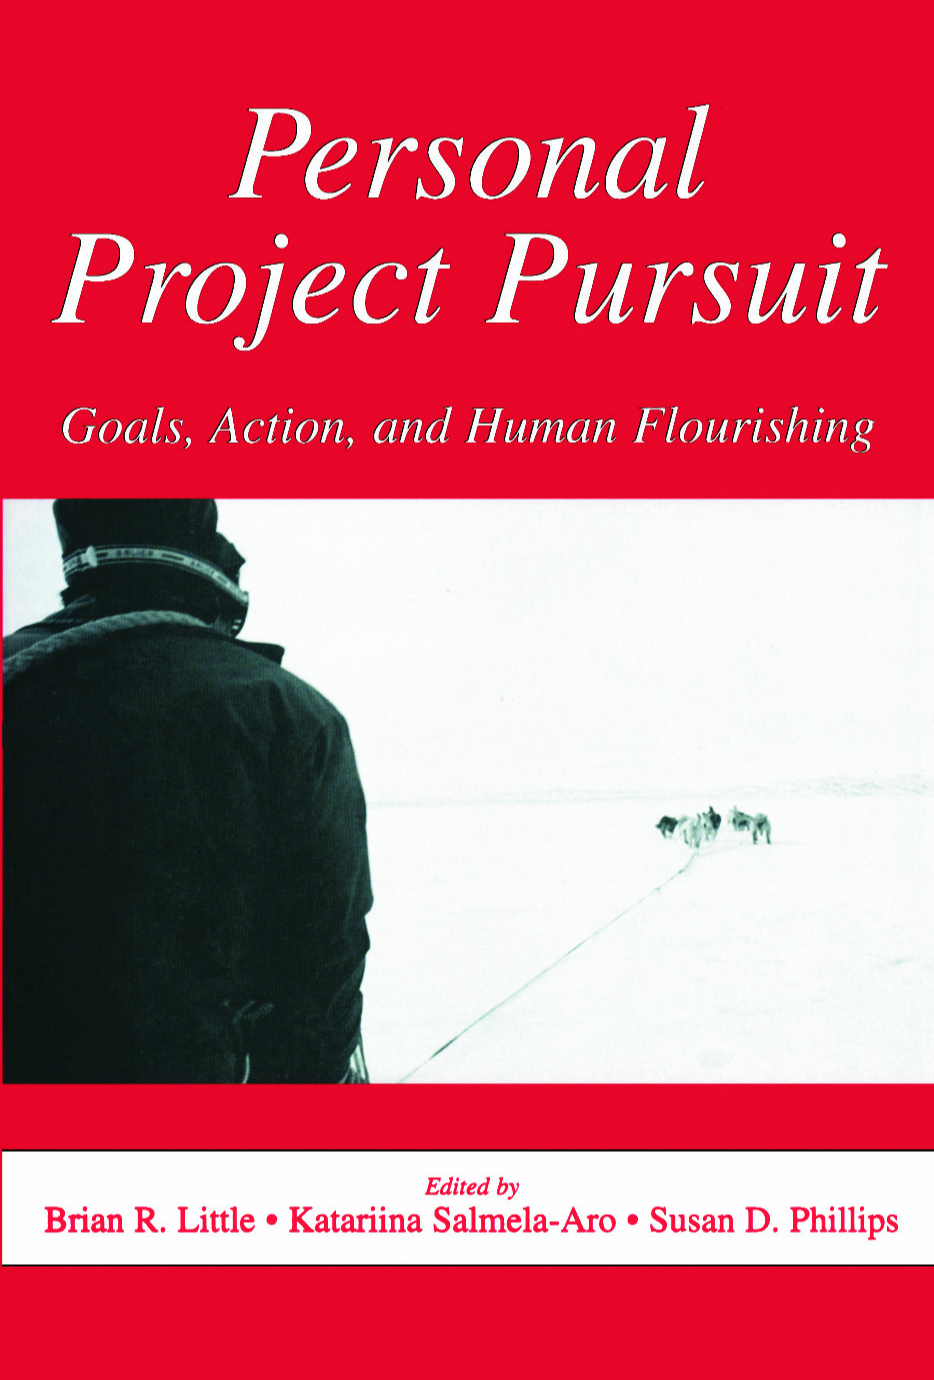 Personal Project Pursuit: Goals, Action and Human Flourishing.